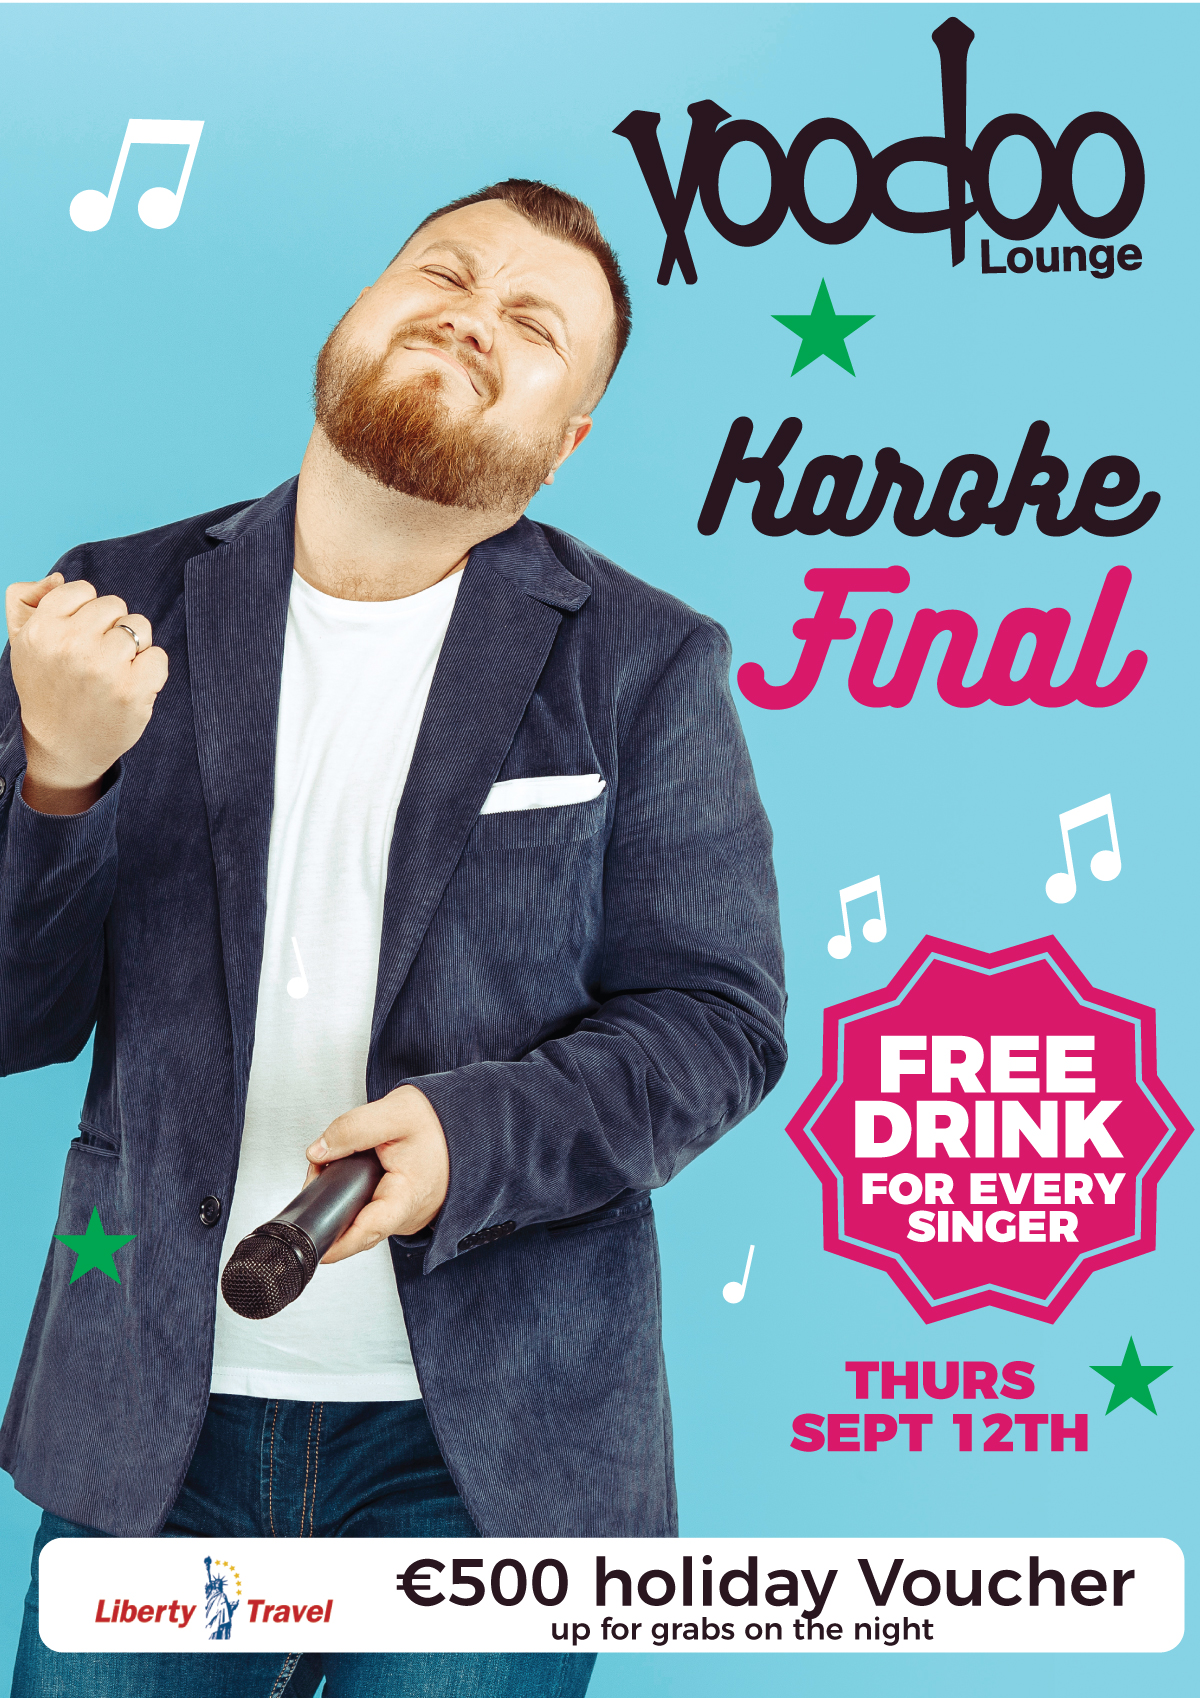 voodoo-venue---thurs---karaoke--final-thurs-sept-12-2019.jpg